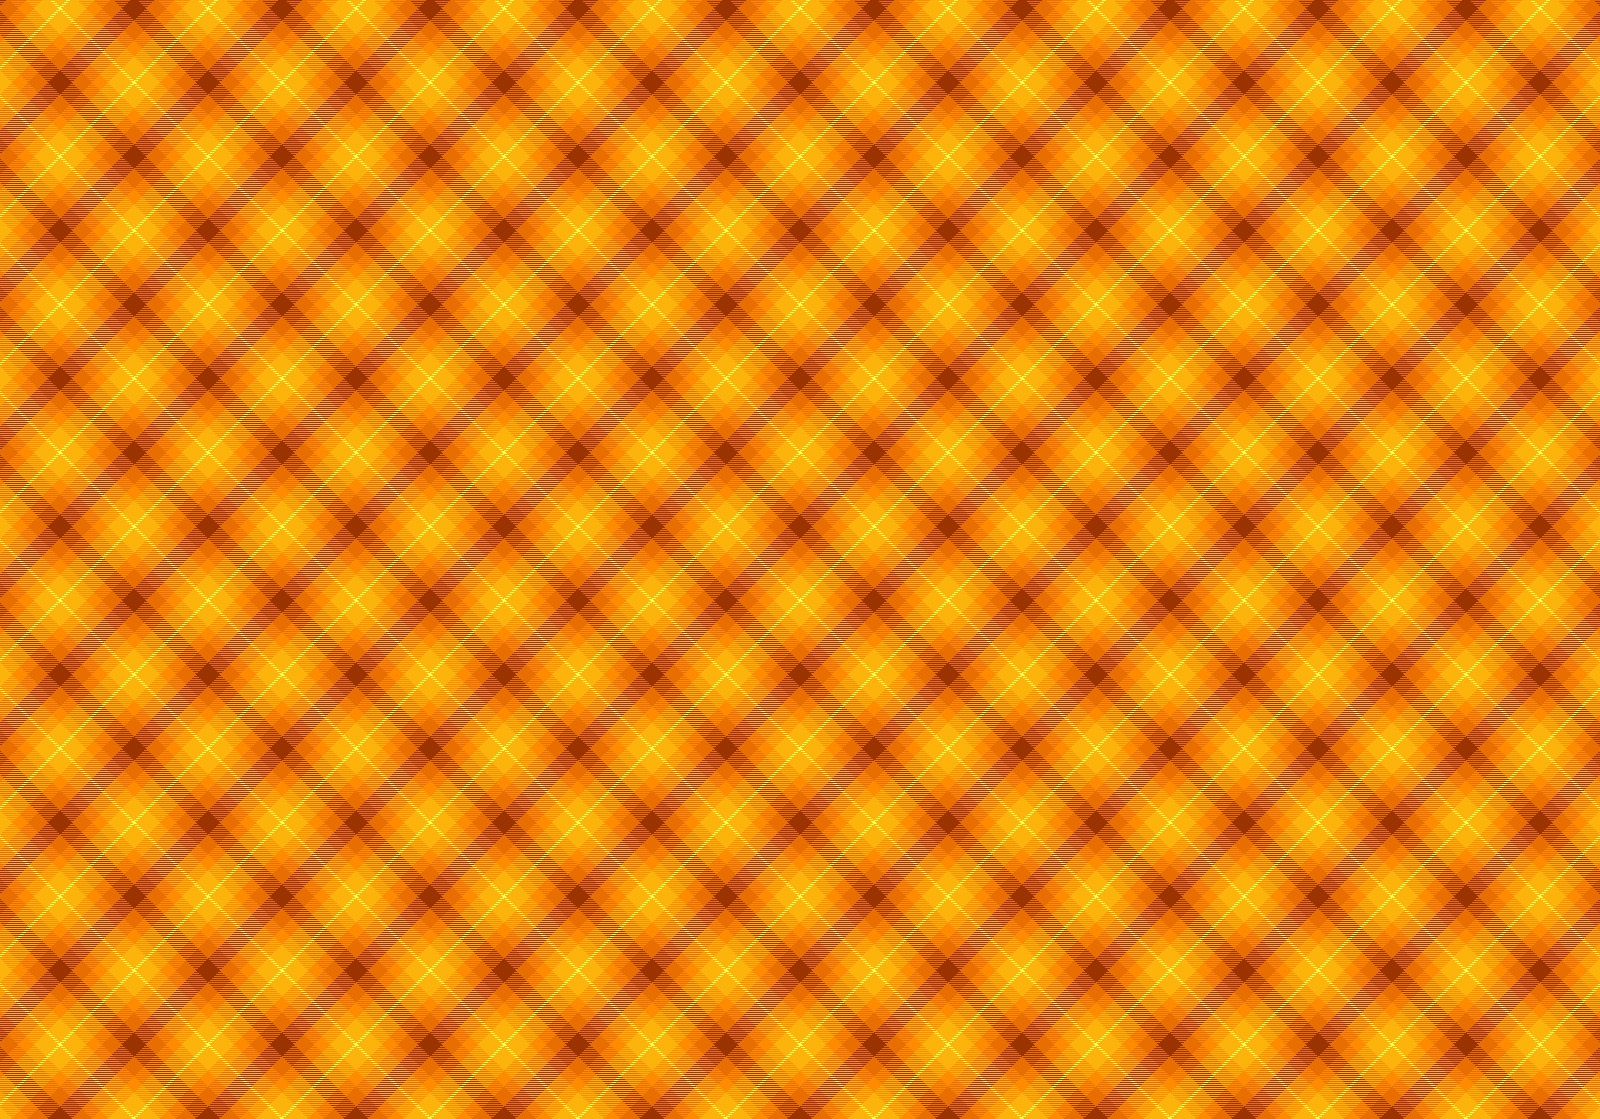 92821 free download Yellow wallpapers for phone, Textures, Texture, Grid, Background, Surface Yellow images and screensavers for mobile